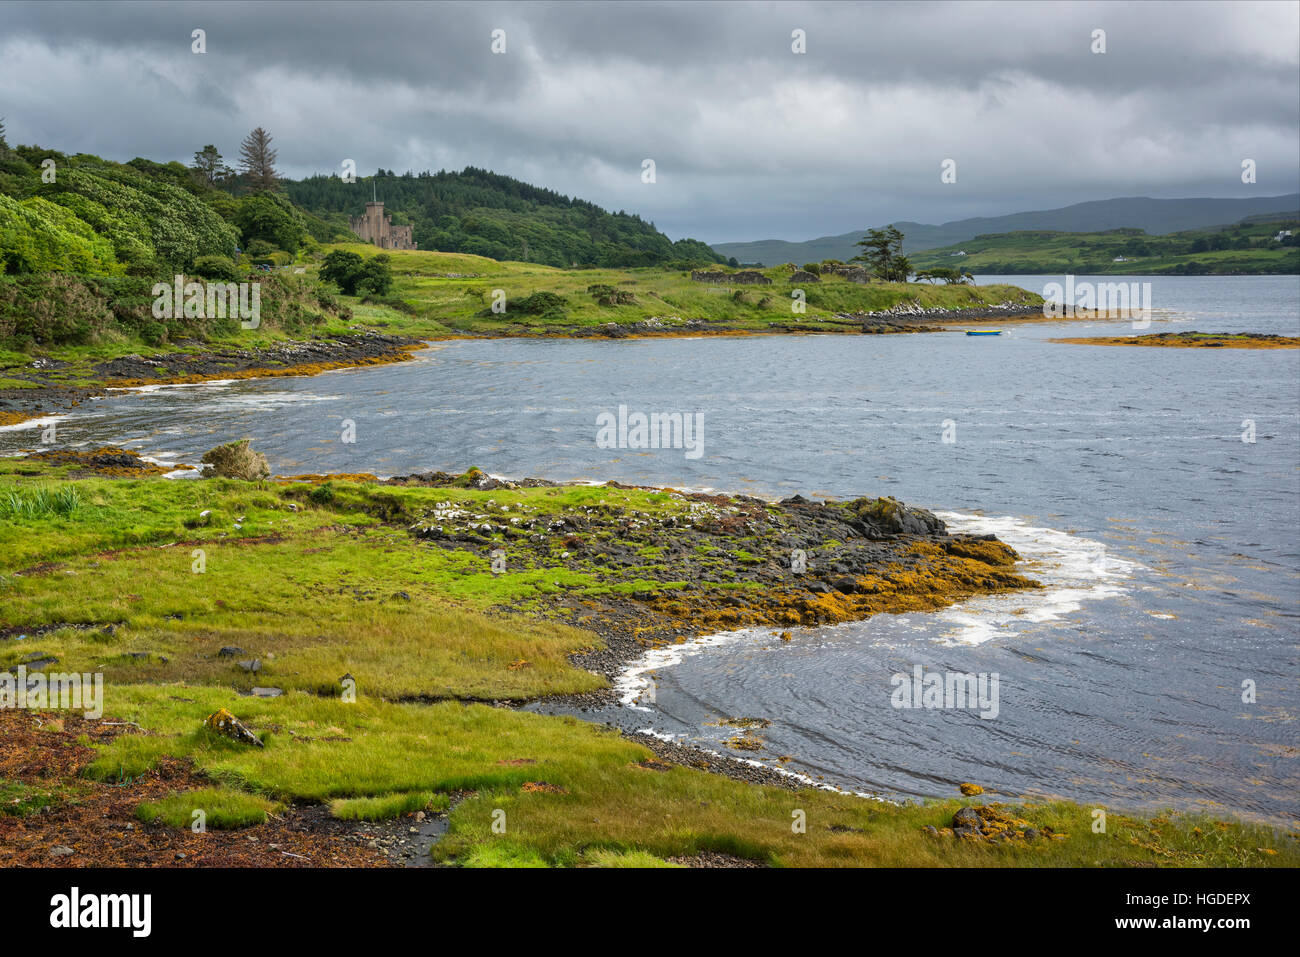 Scotland, Hebrides archipelago, Isle of Skye, Dunvegan Castle - Stock Image